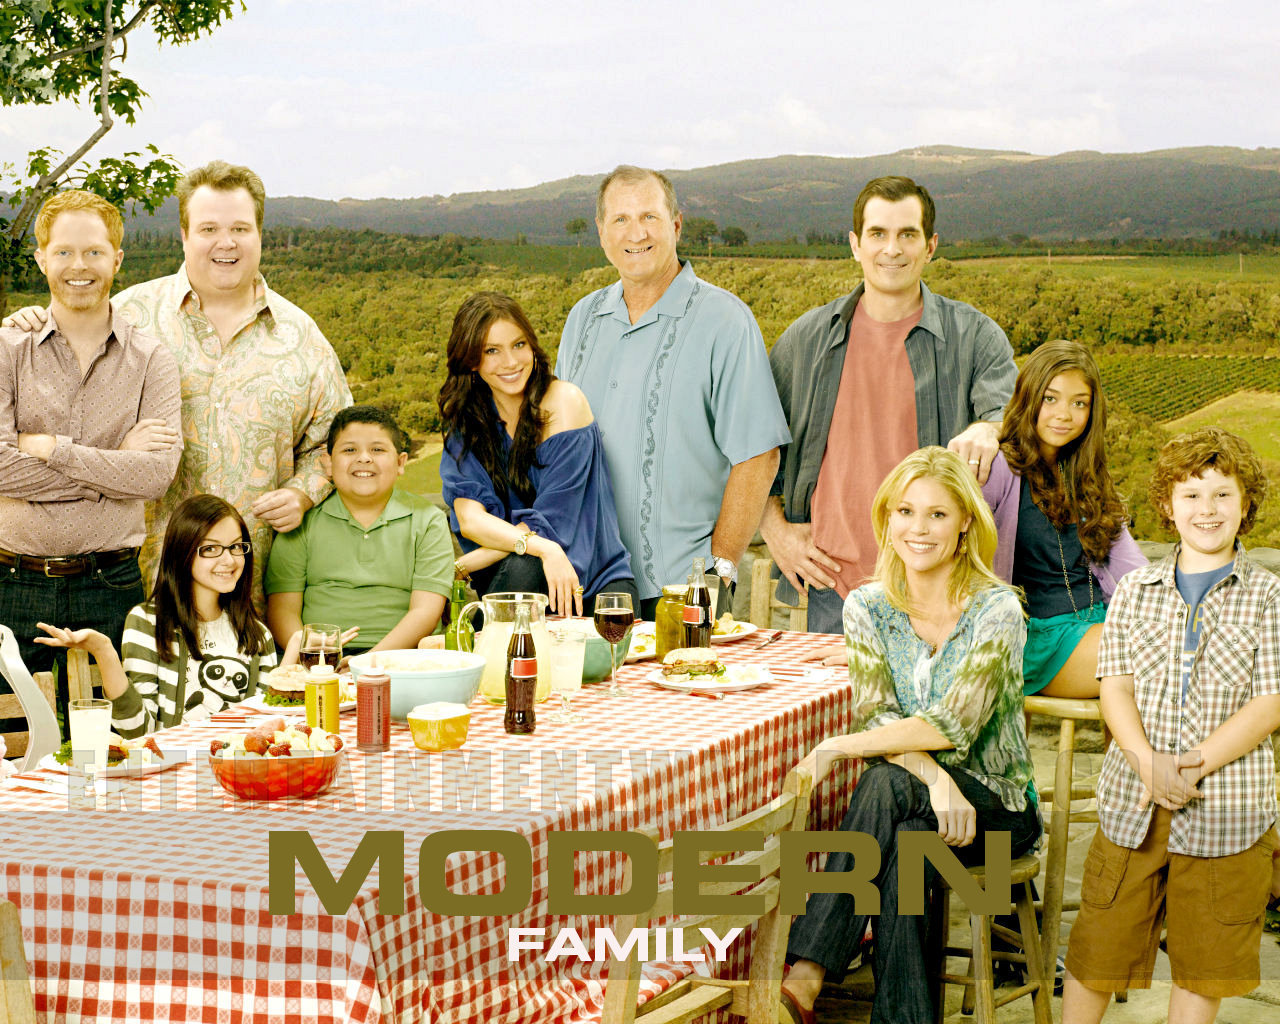 modern family images wallpaper - photo #7